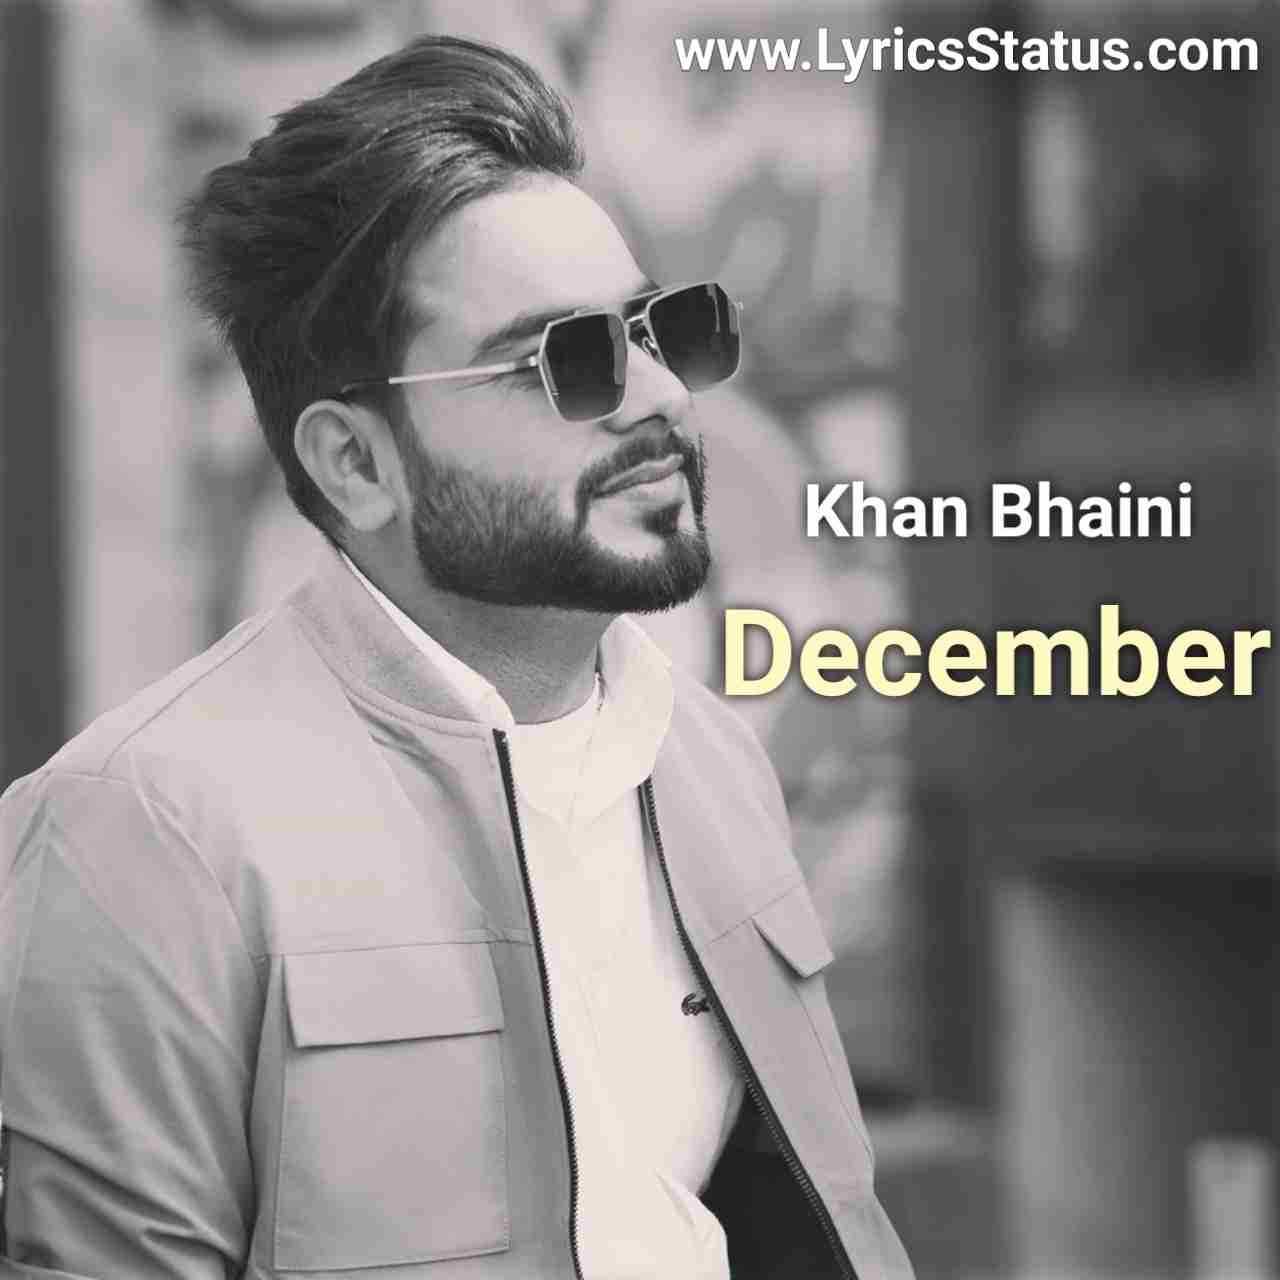 Last December de din balliye Khan Bhaini Lyrics status download